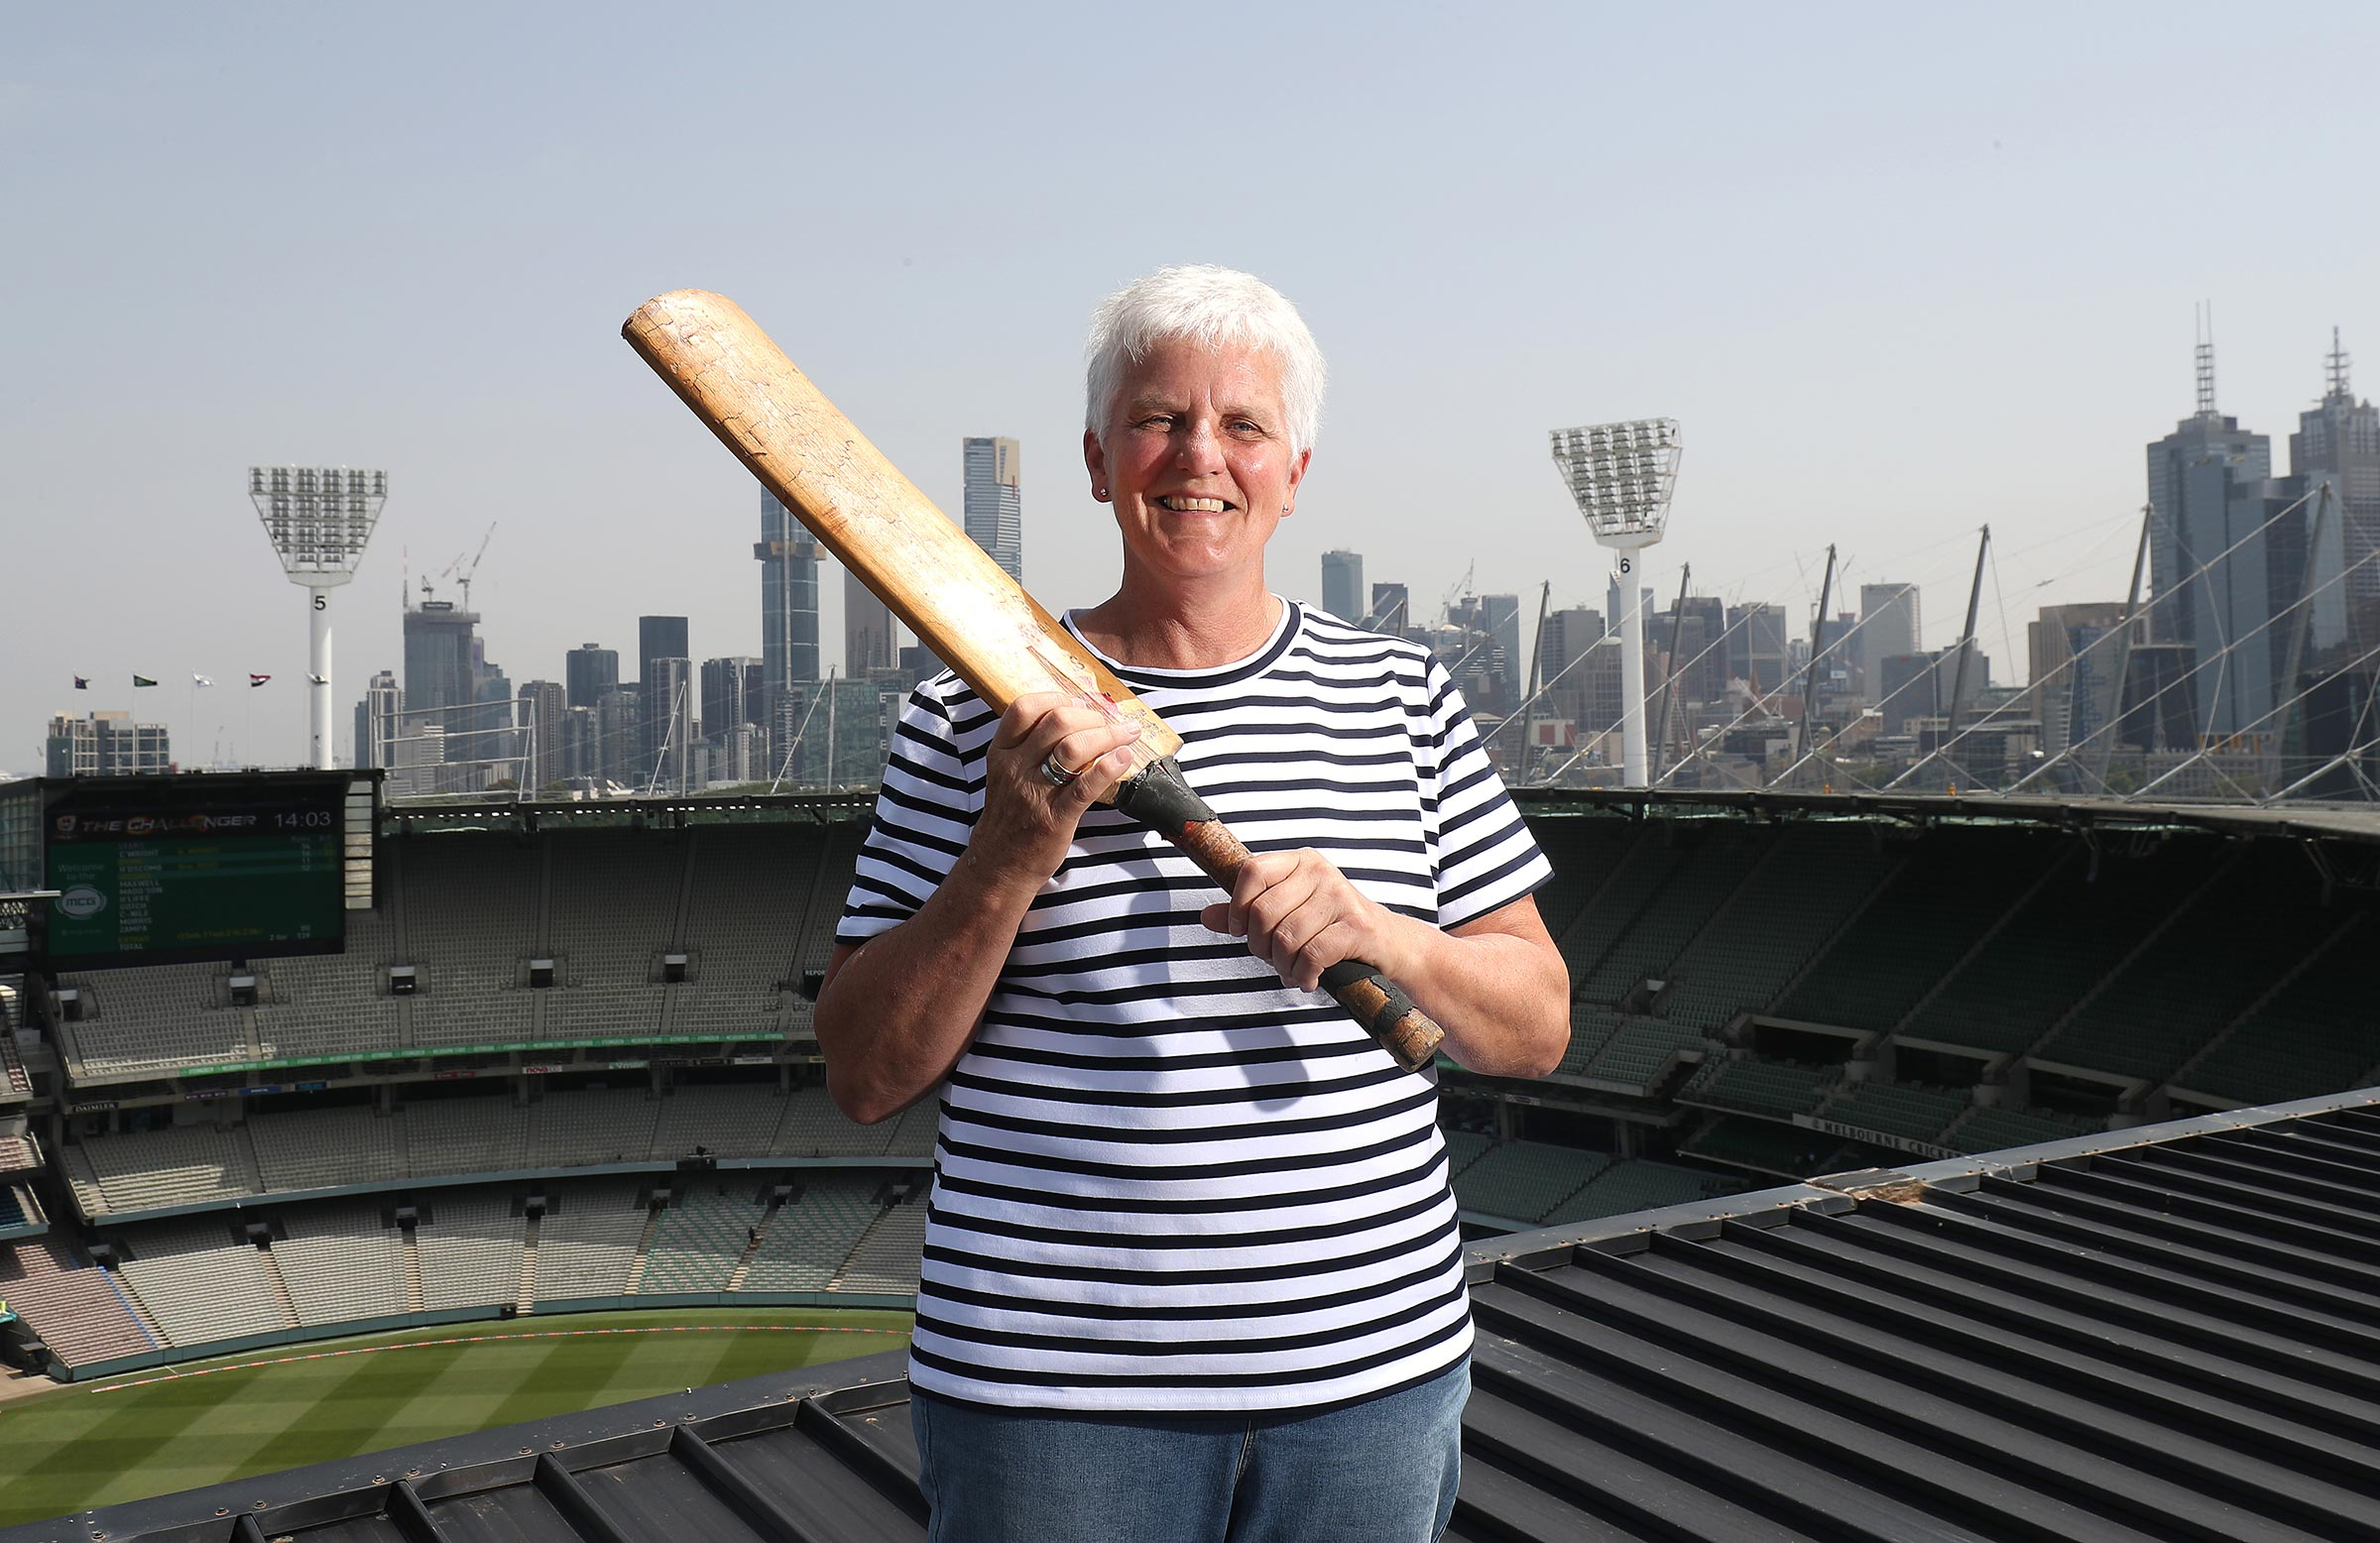 Tredrea on the roof at the MCG // Getty